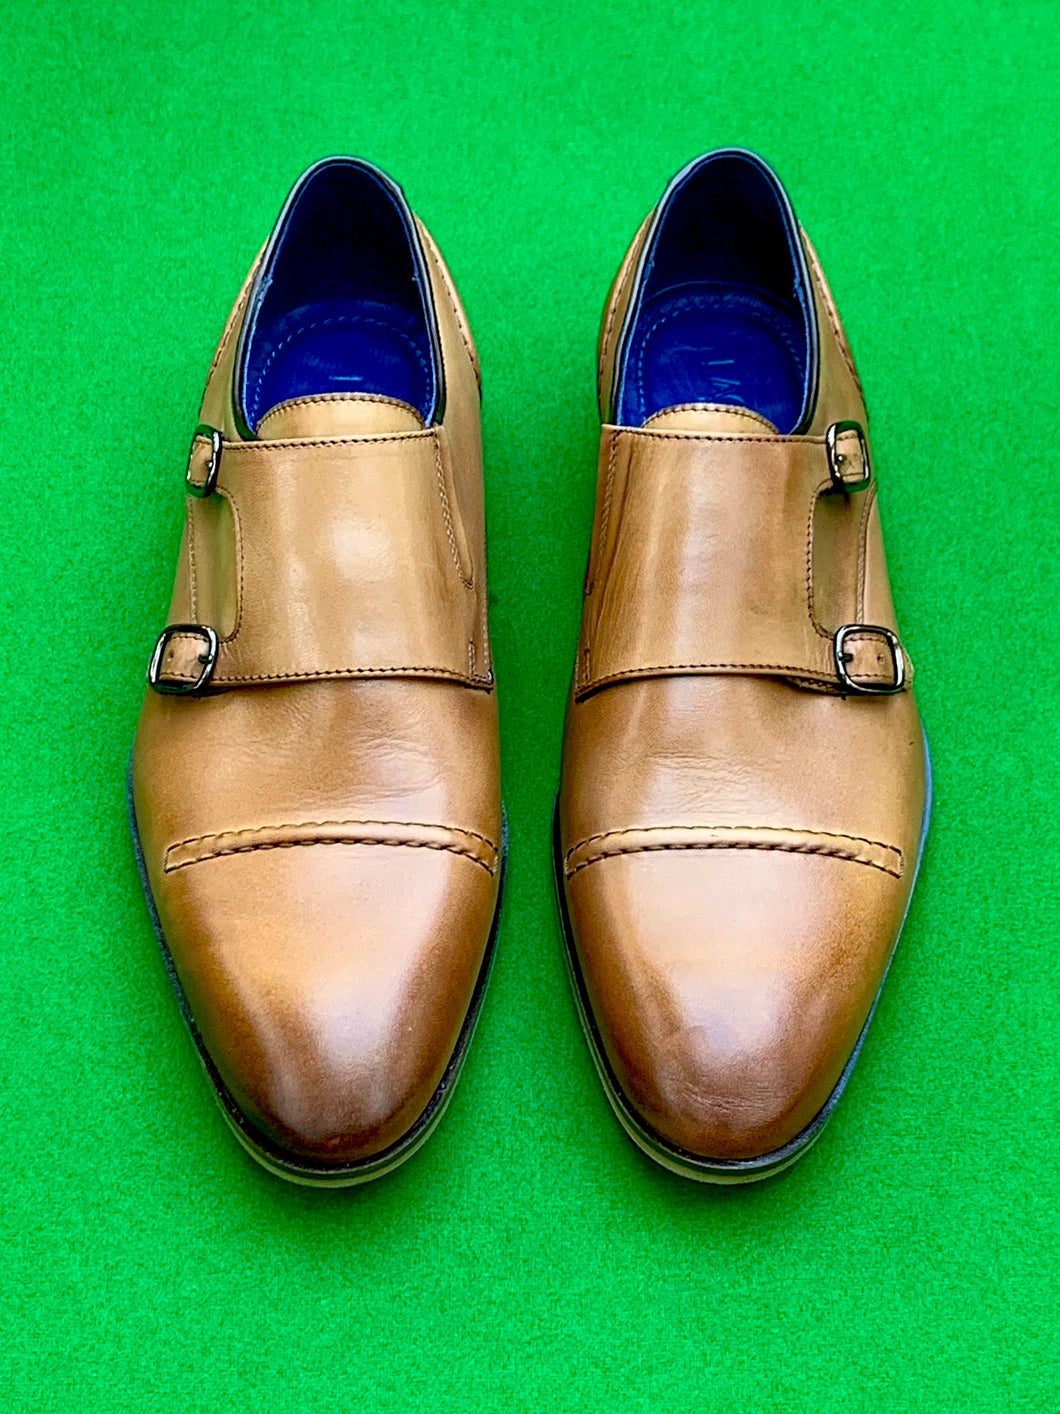 Shoes - Double Monk Strap - TAN